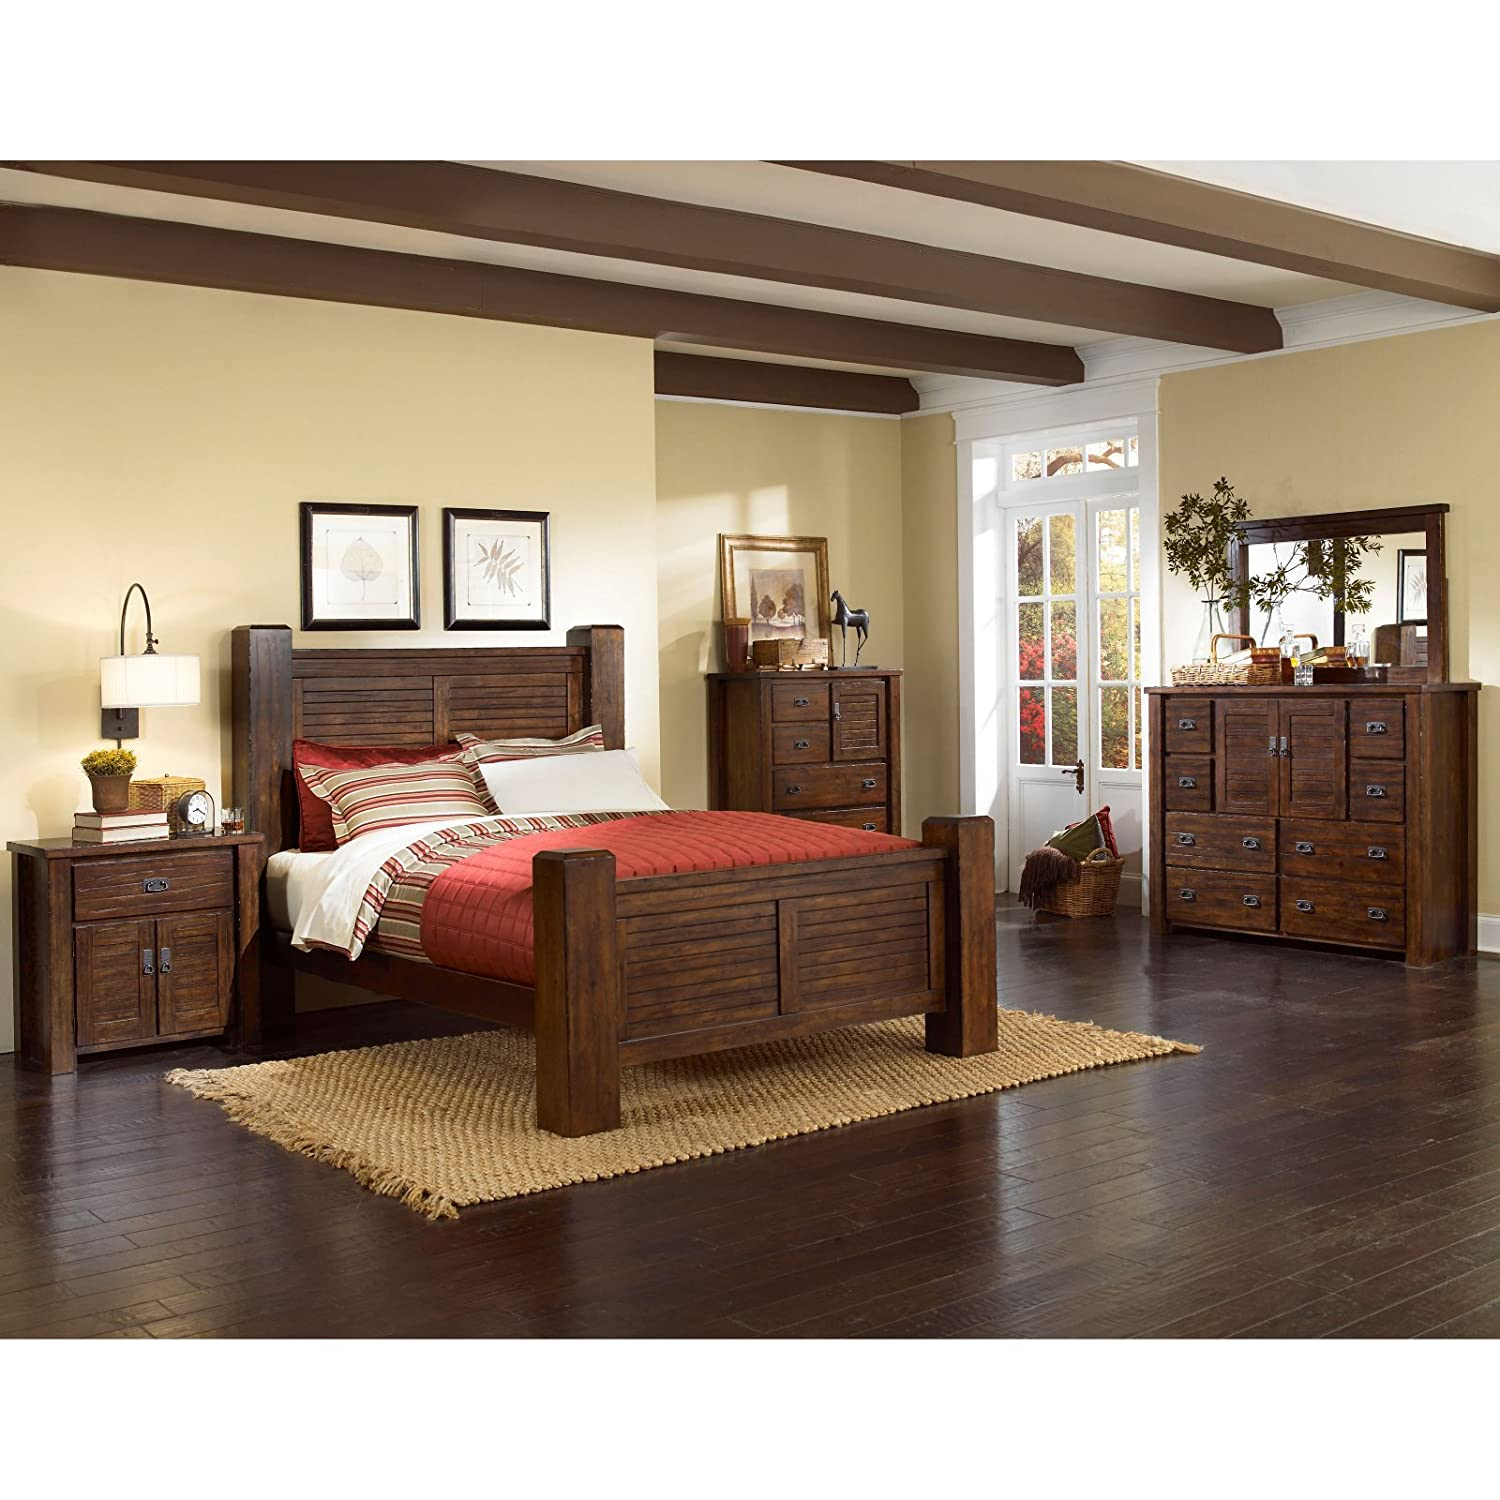 pine bedroom set. Amazon com  Progressive Furniture Trestlewood Nightstand 31 x 17 Mesquite Pine Kitchen Dining